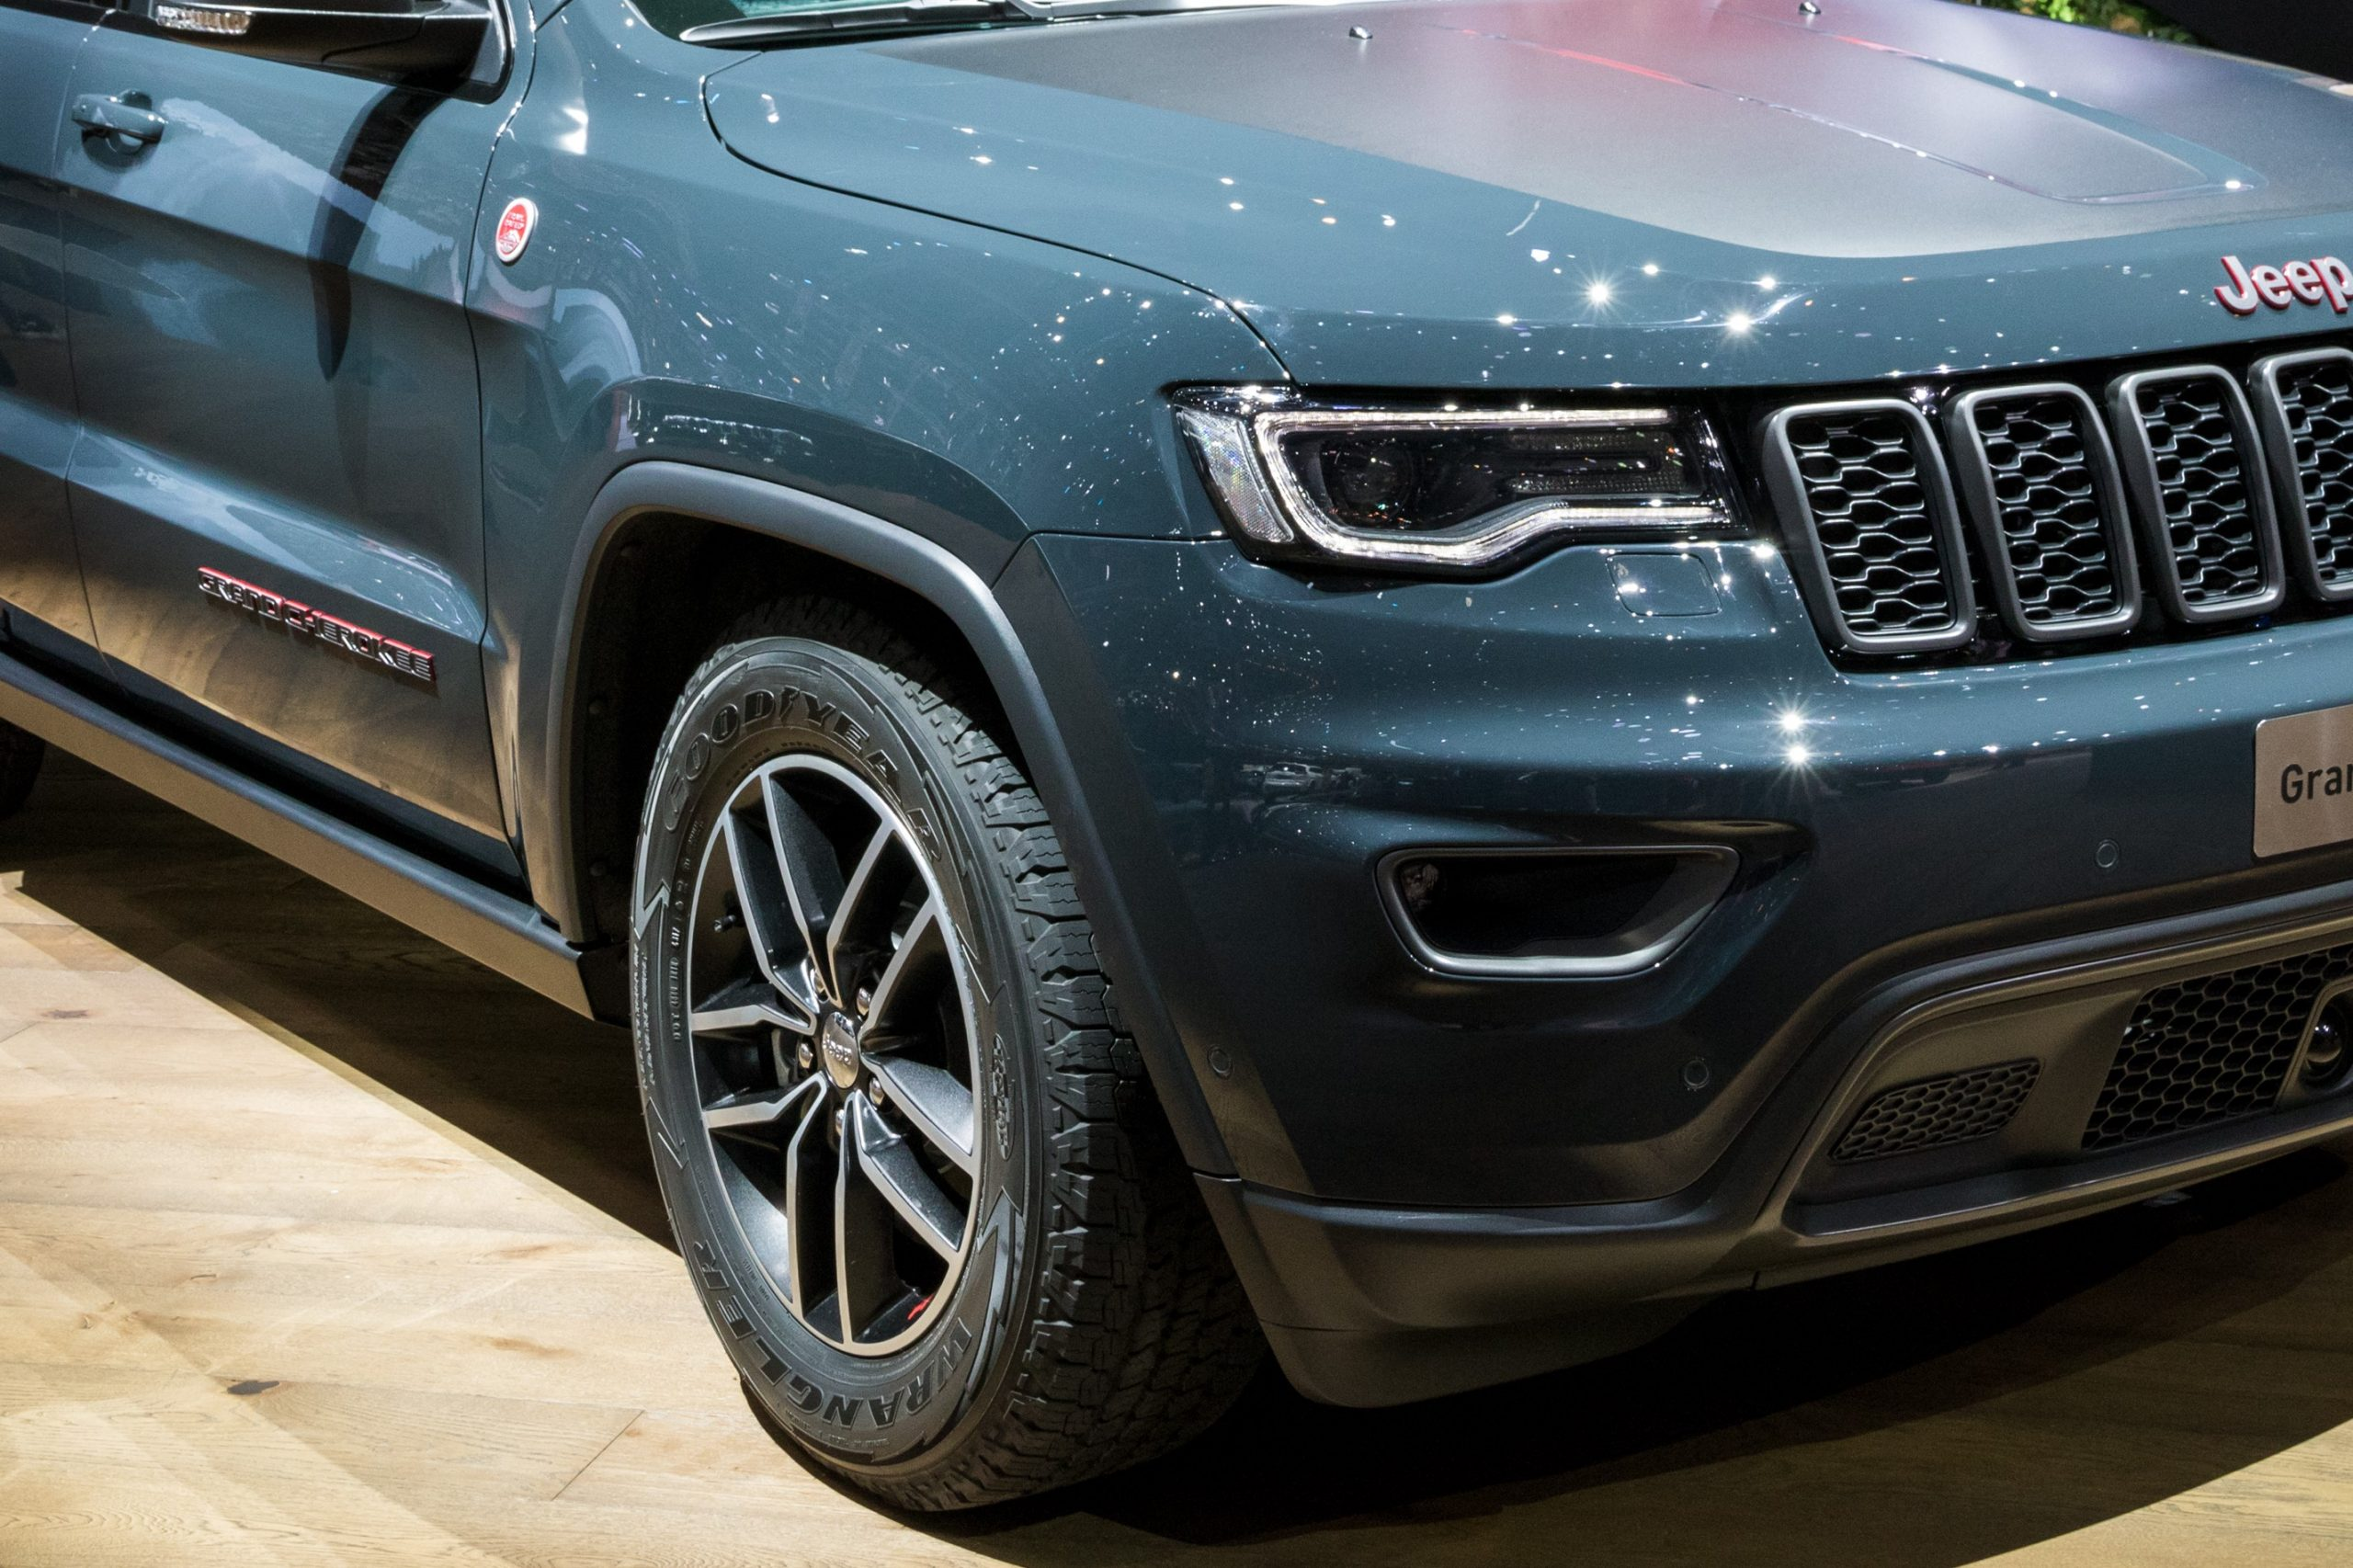 Jeep Grand Cherokee Tires Near You Image